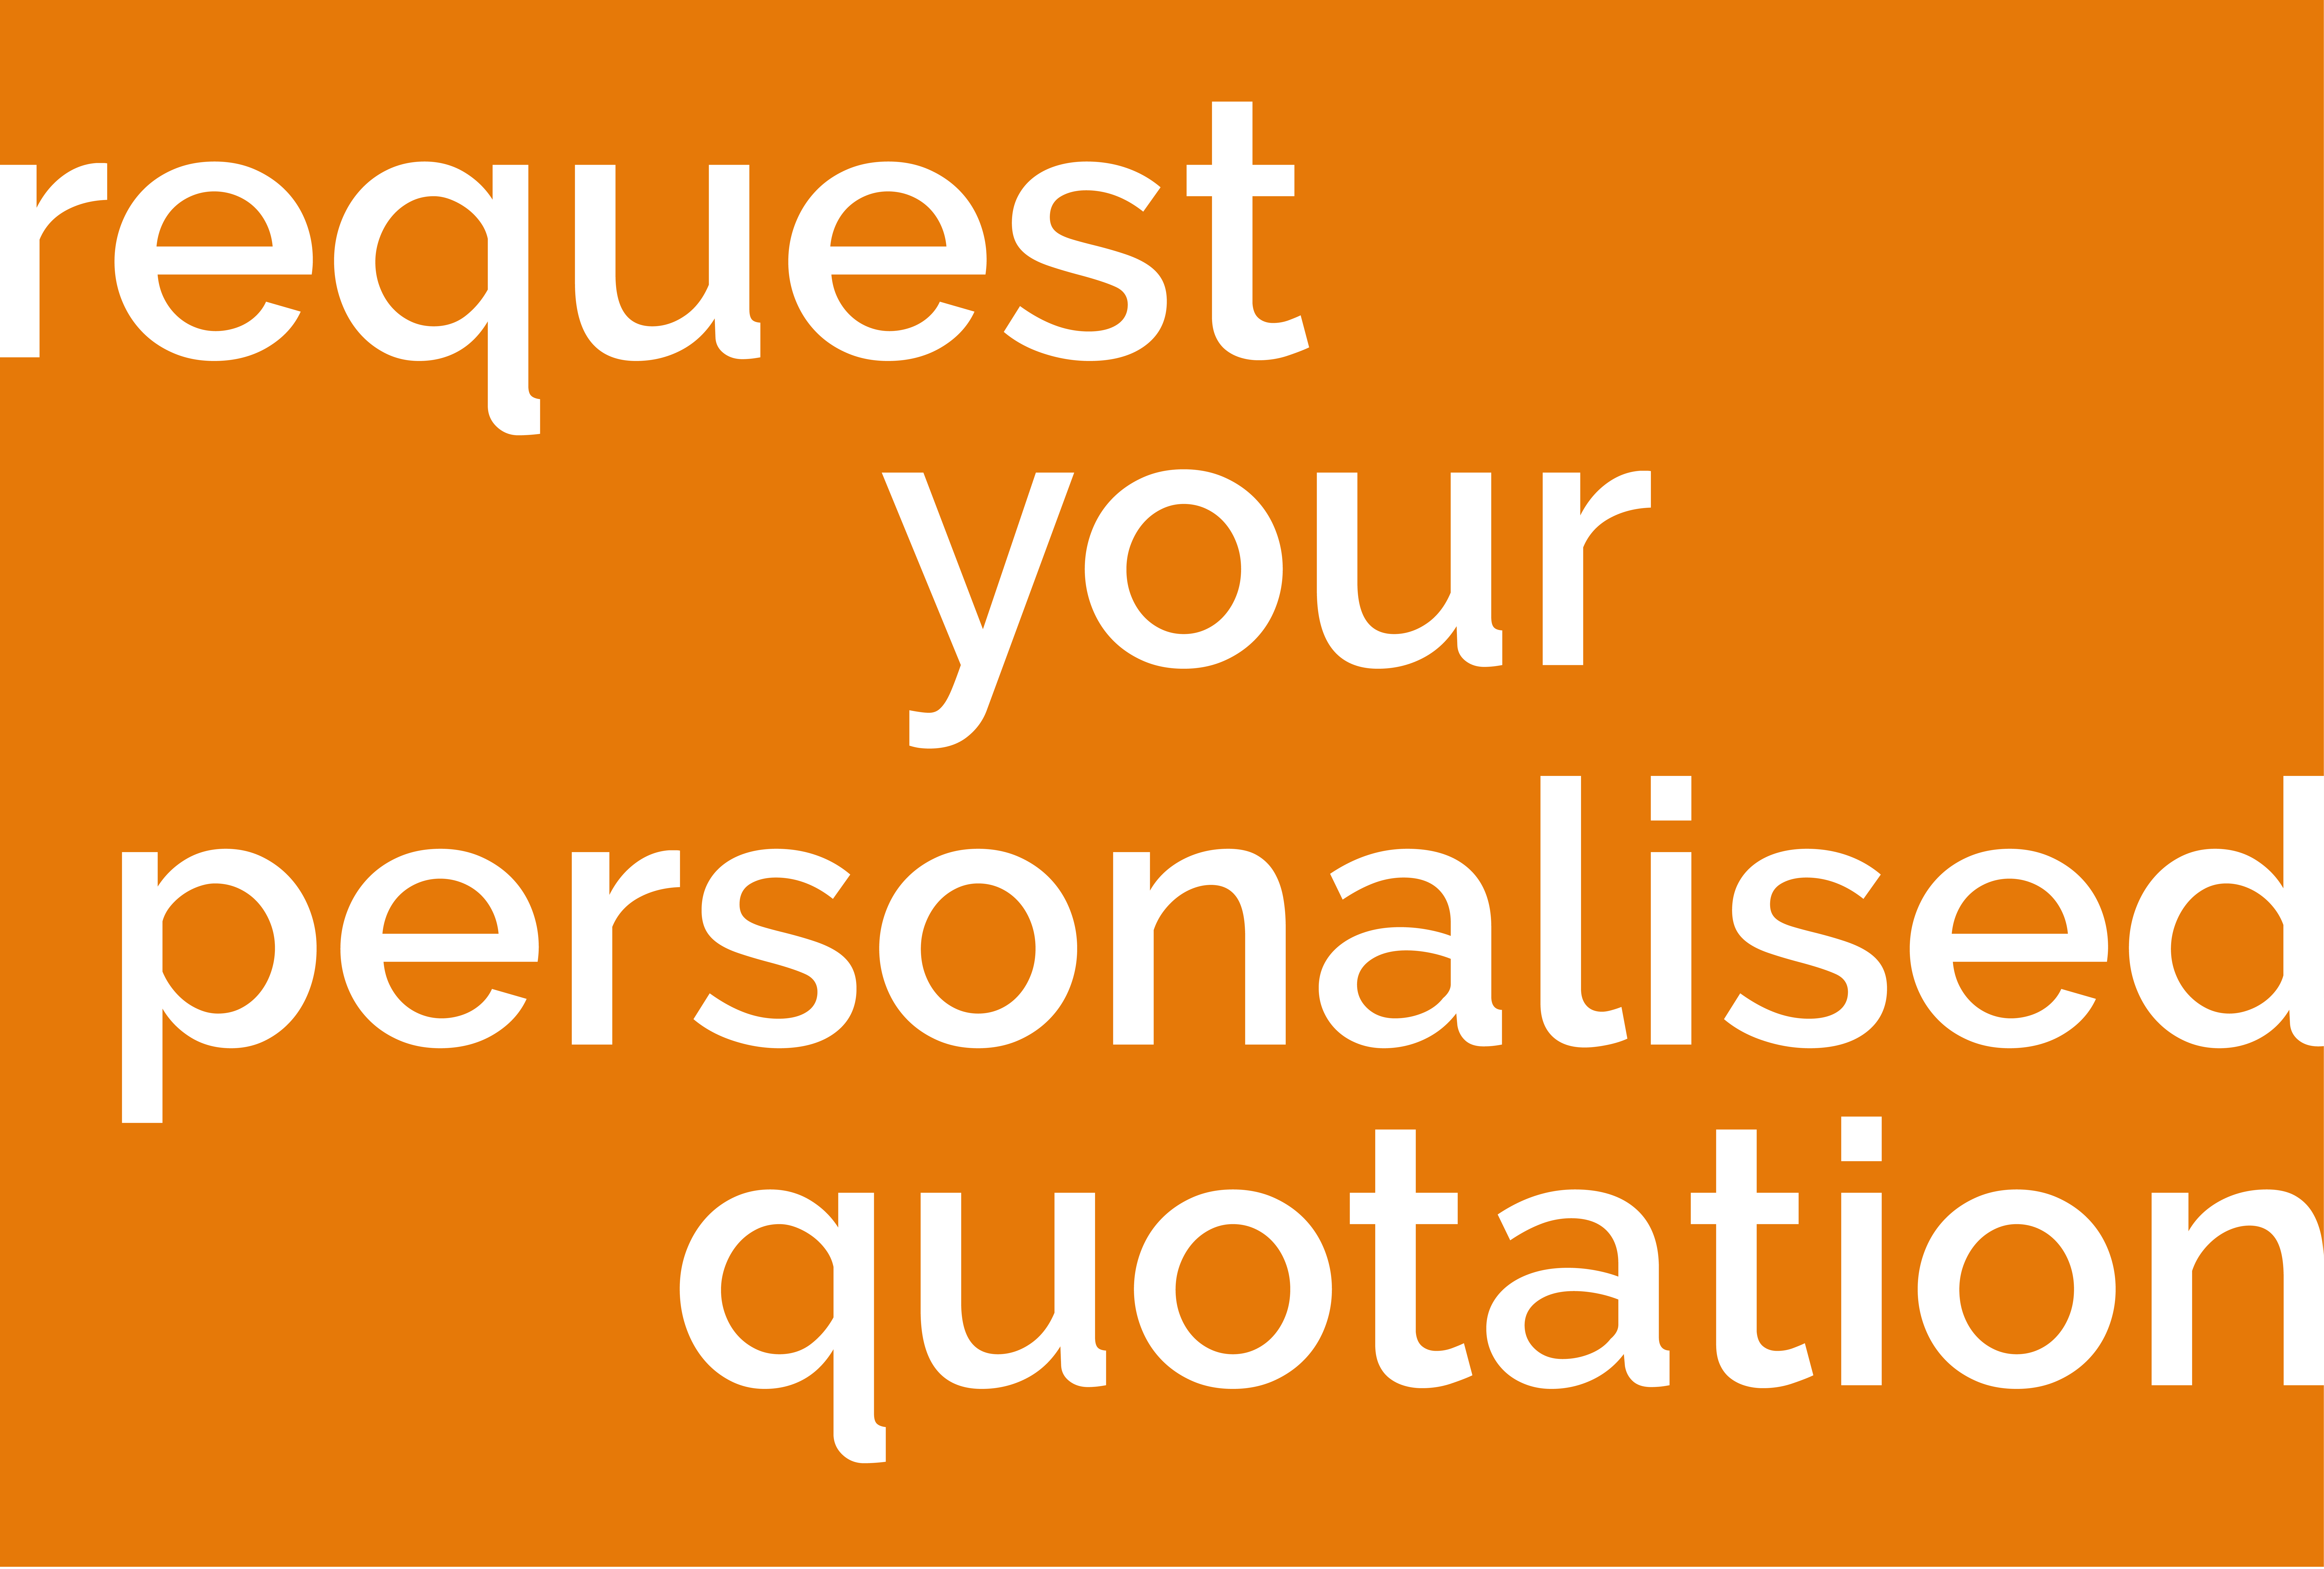 MT - Personalised Quotation - Flat Graphic